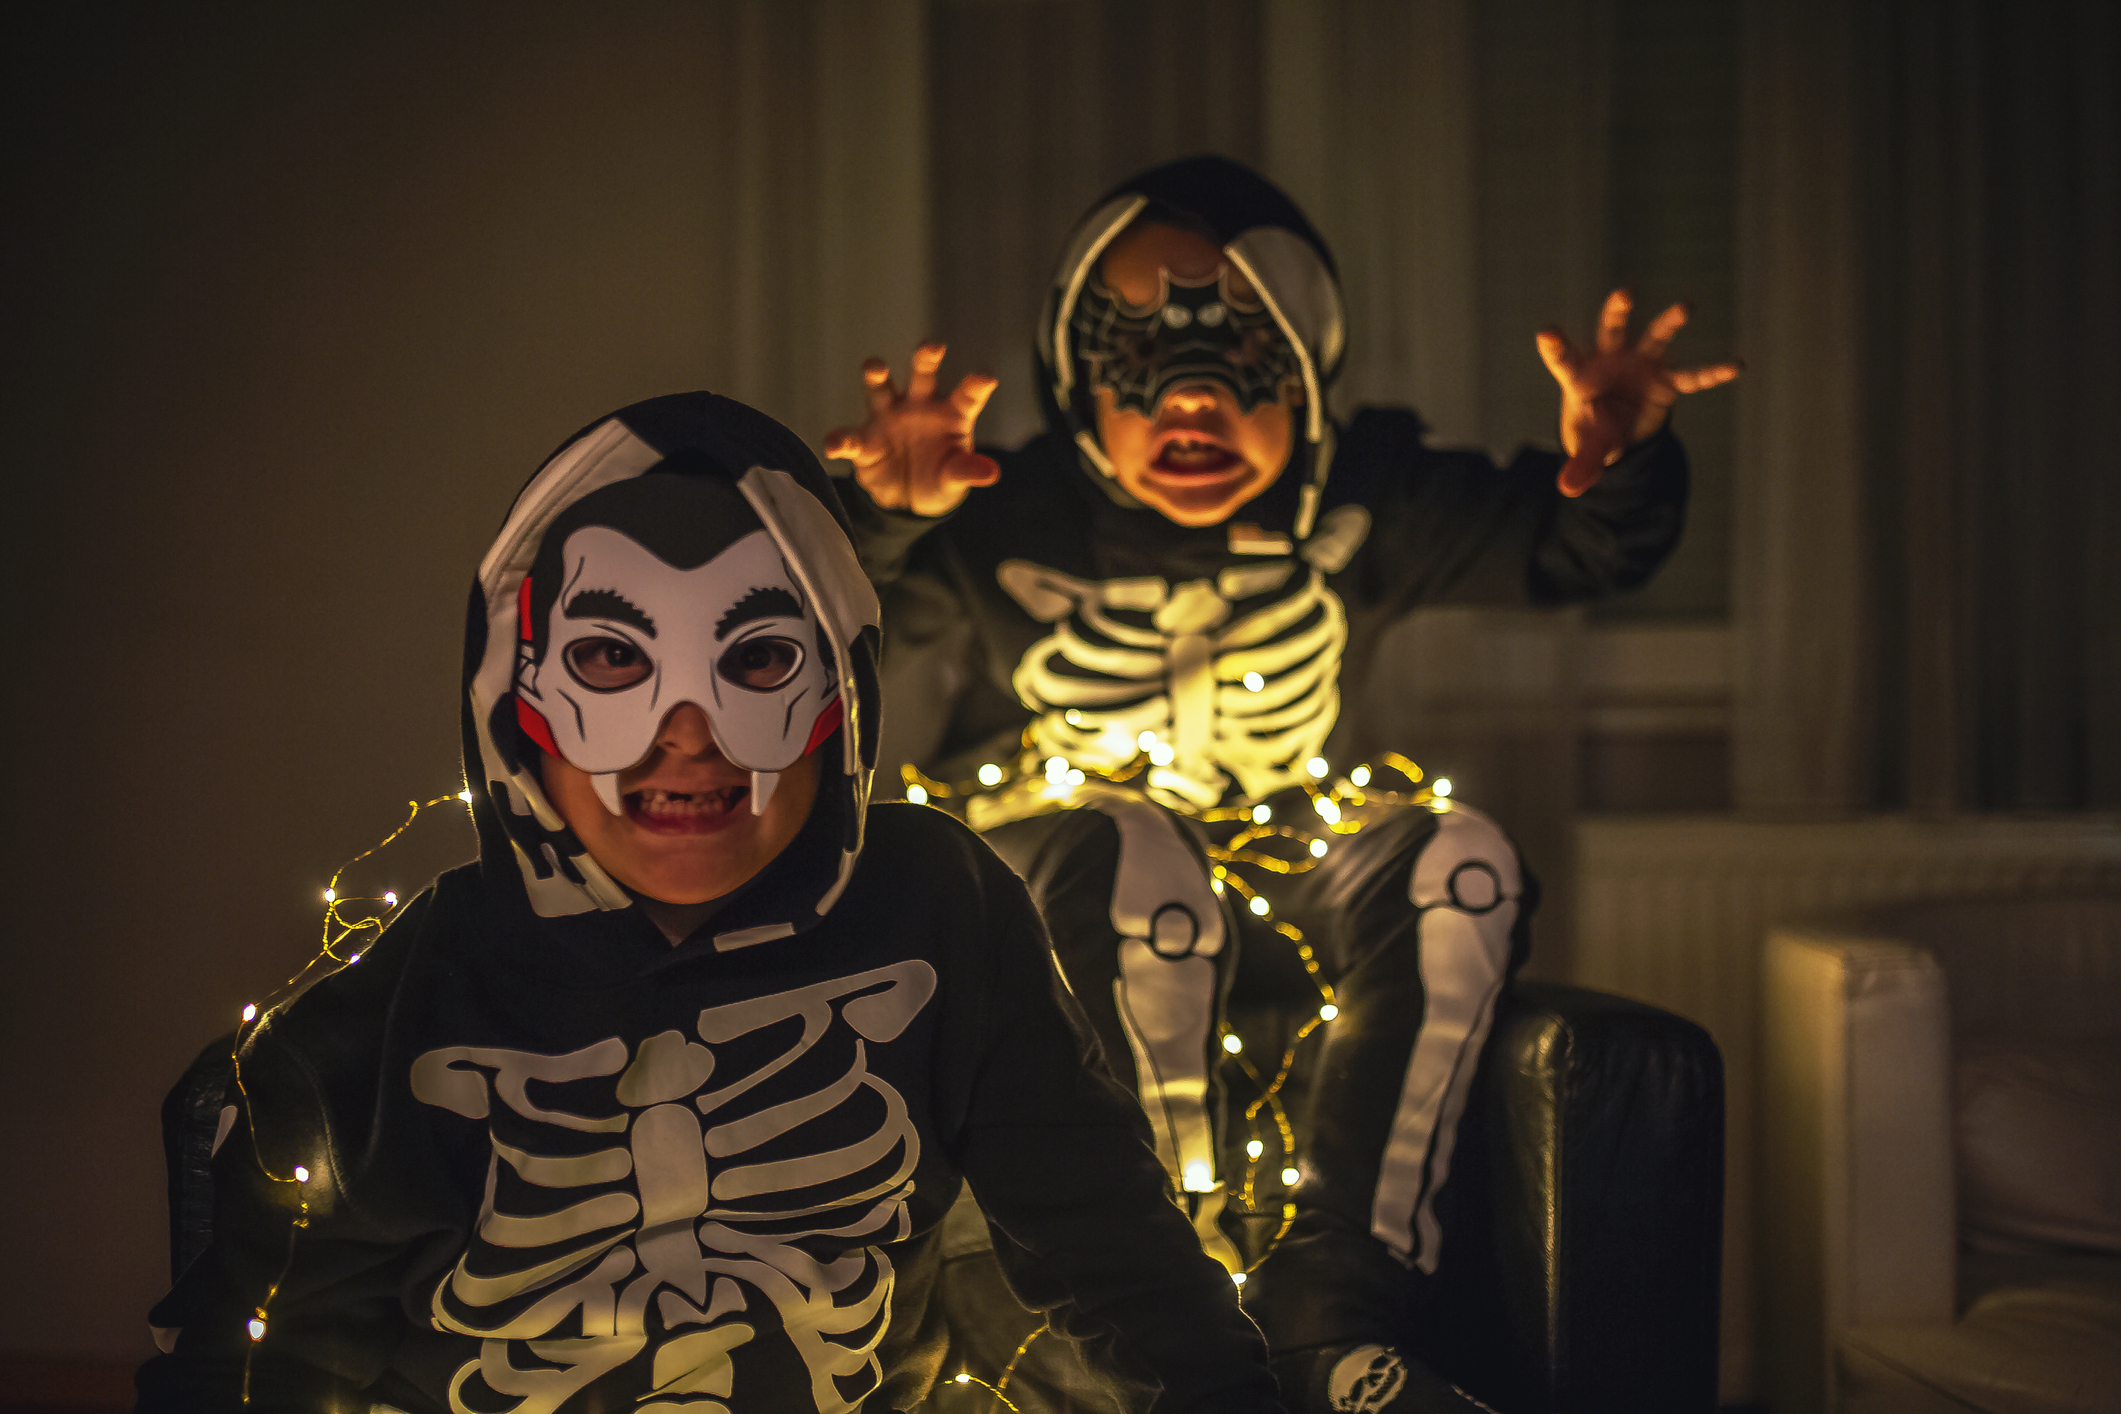 two young boys in Halloween costumes making scary faces.